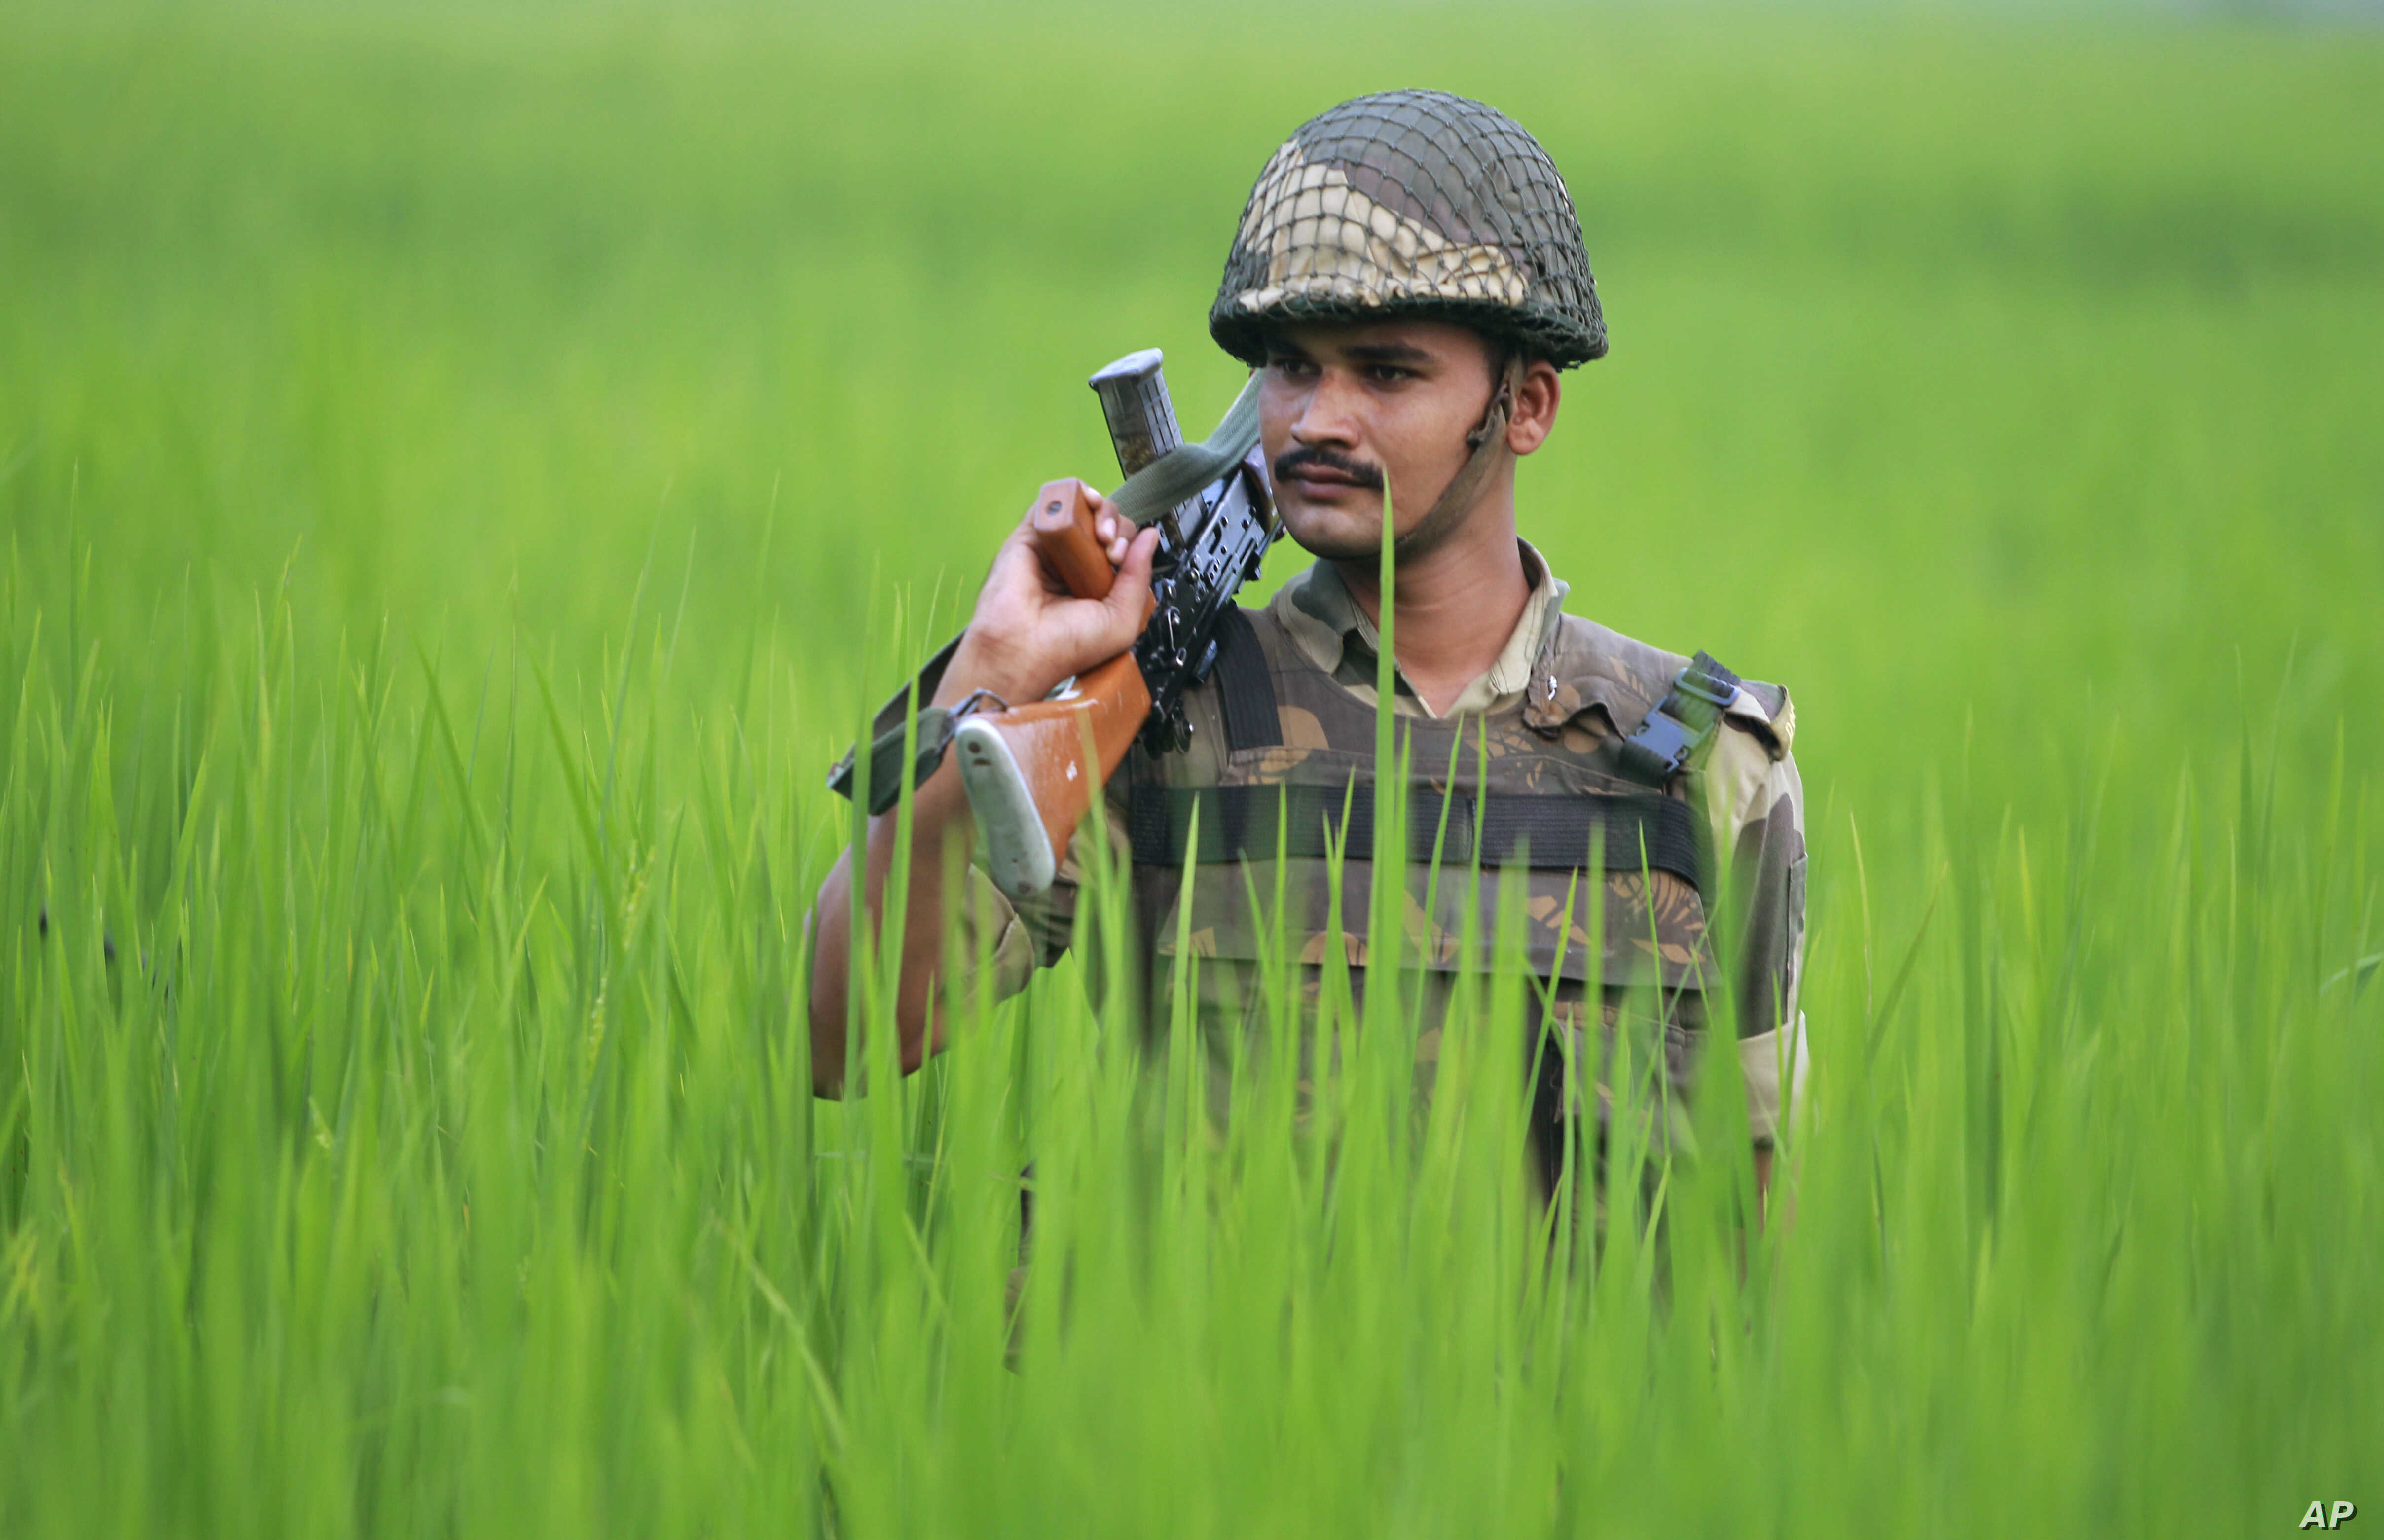 An Indian Border Security Force soldier patrols the India-Pakistan border area at Ranbir Singh Pura, about 35 kilometers (22 miles) from Jammu, India, Sept. 24, 2016.